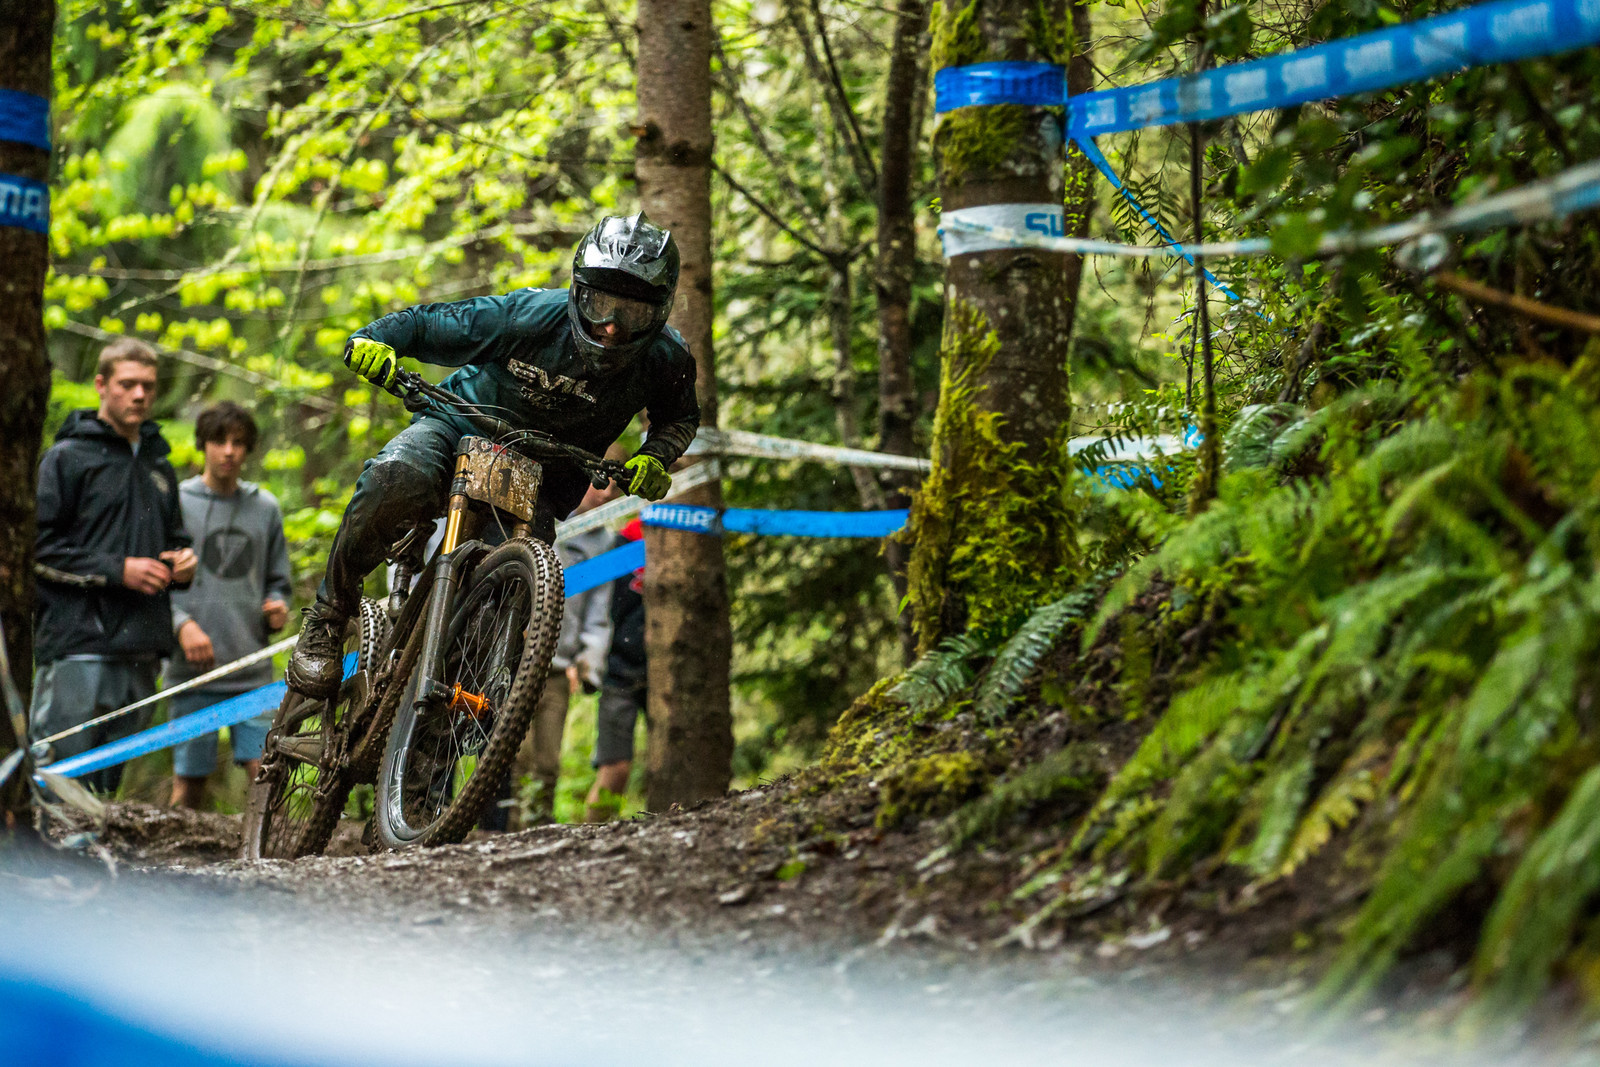 #1 seed in Elite Men, Luke Strobel was not mucking about in the mud today. #29er